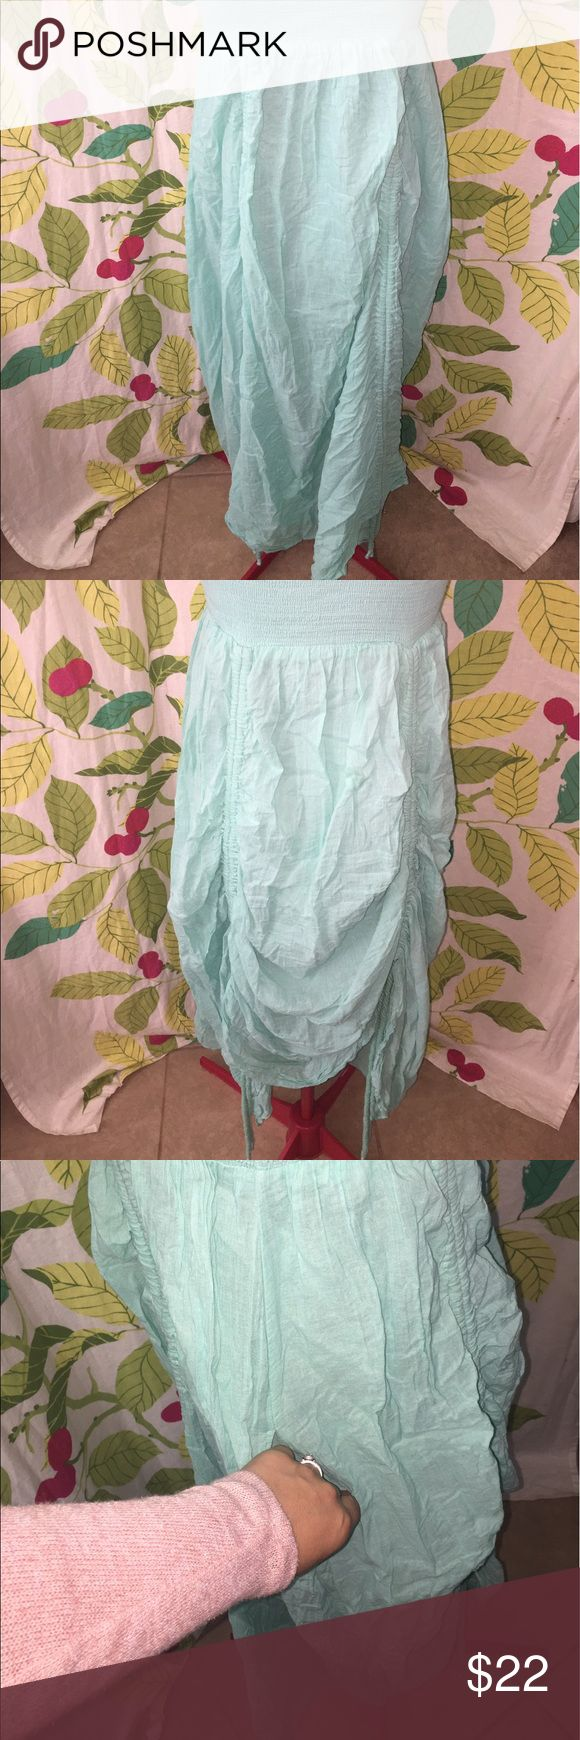 "Anthropologie Adjustable Dress This beautiful dress is so unique. Mint green color is so vibrant. Dress can also be worn as a skirt. Drawstrings up the dress can adjust the fit & length. So versatile. No stains or rips. Cotton. Lined. Bandeau top can stretch up to 20"". Has pockets! 48"" long from top to bottom. Please see my other dresses & skirts. Brand is Lapis from Anthropologie. BUNLDE & SAVE 20%!! Lapis Dresses Strapless"